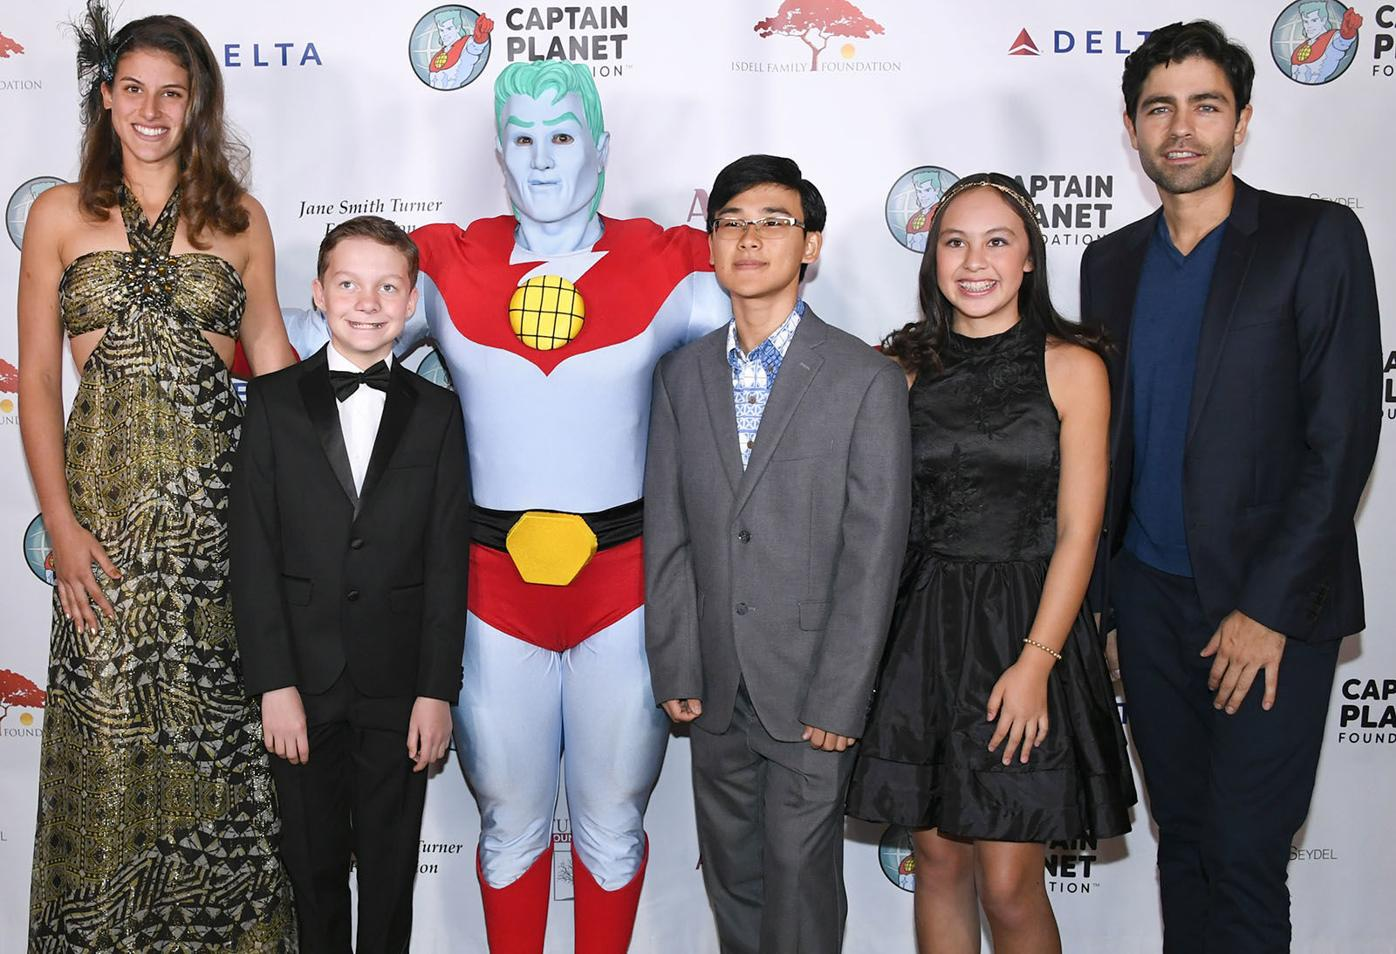 Captain Planet 1 Adrian Grenier with young honorees and Captain Planet